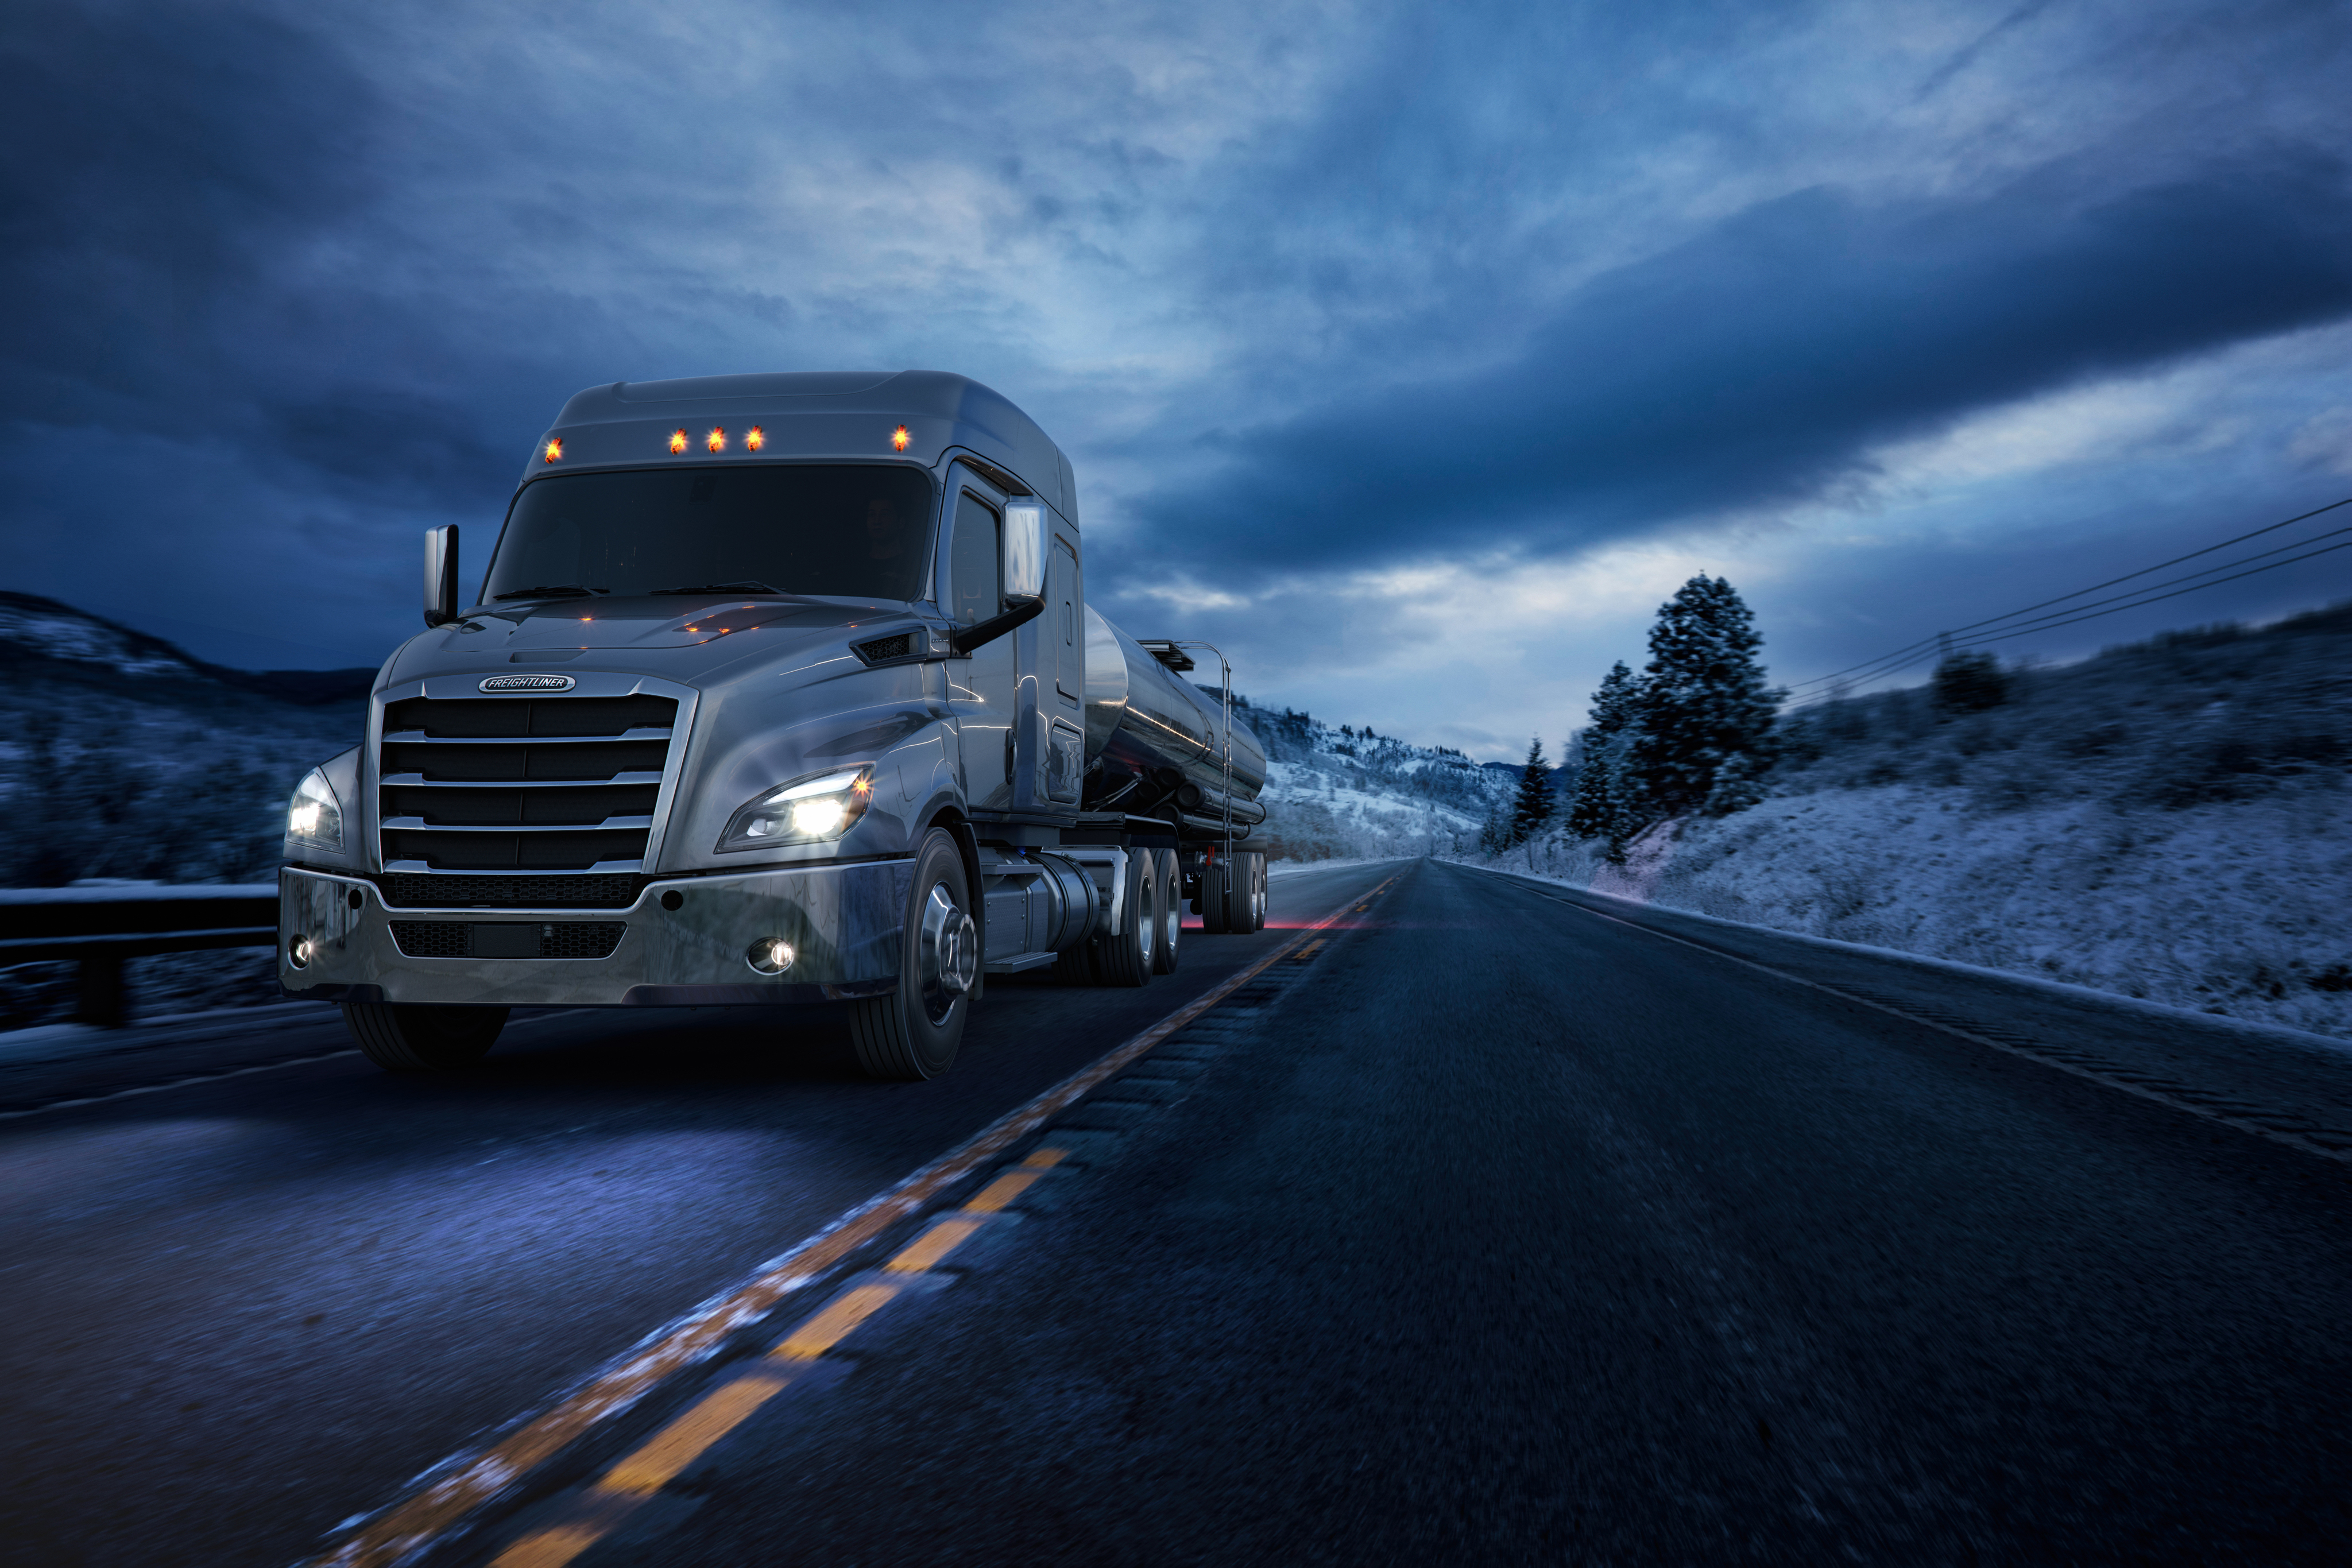 Pictures Trucks 2016-17 Freightliner Cascadia Mid-roof XT ... |Frieghtliner Cascadia 2020 Sports Car